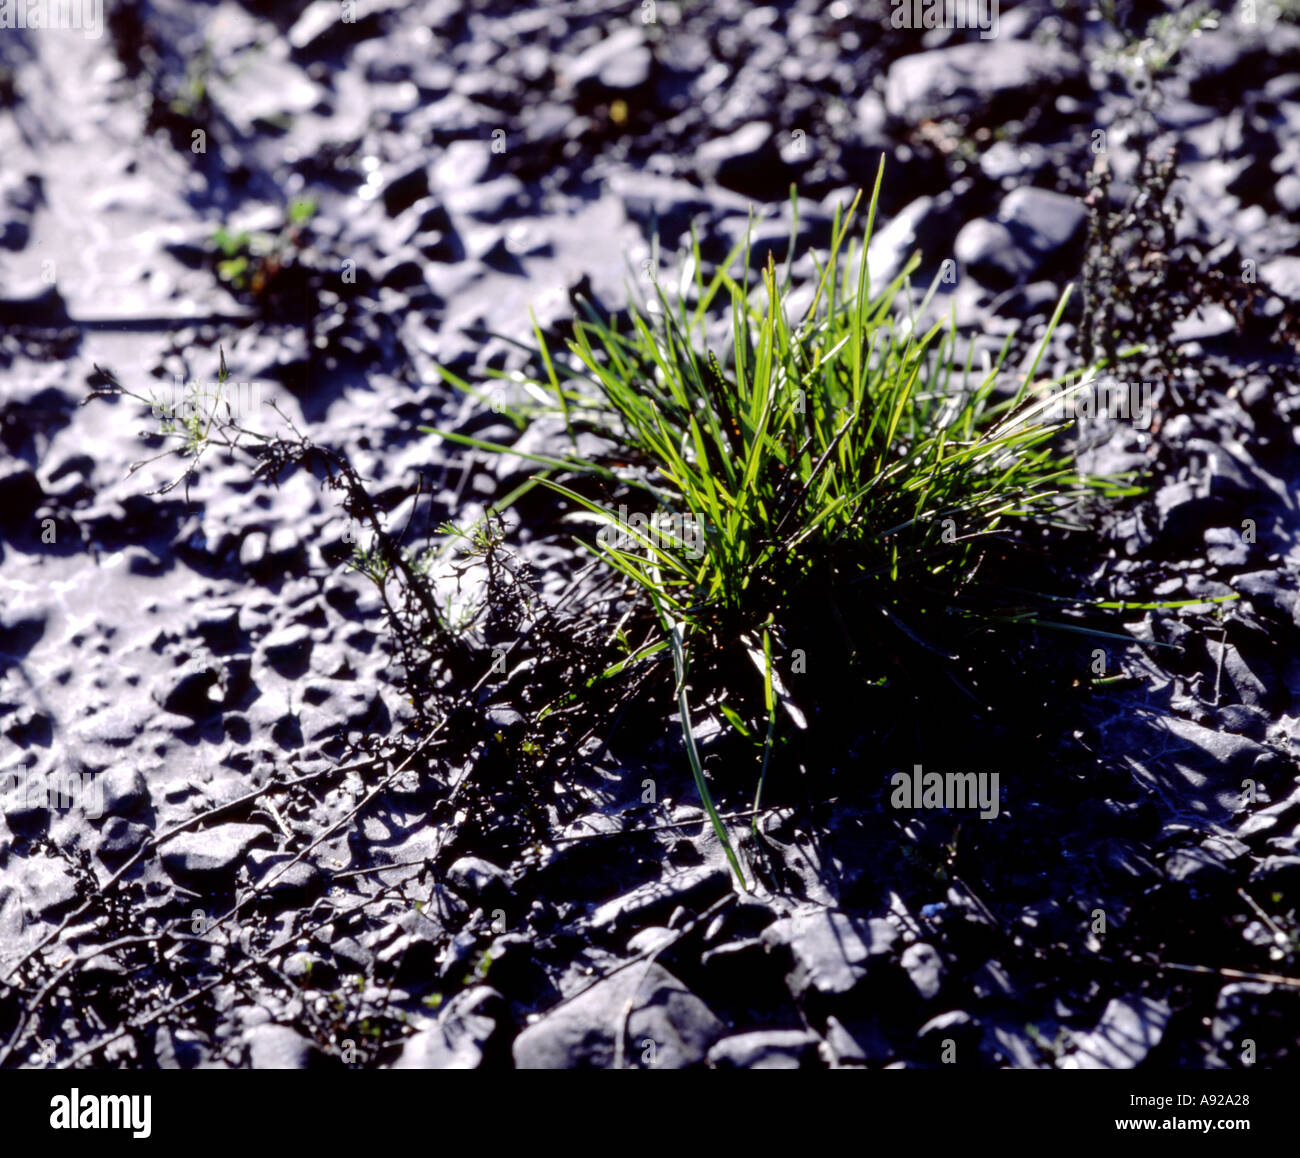 pollution oil oil pollution earth soil ground gras growing survive - Stock Image